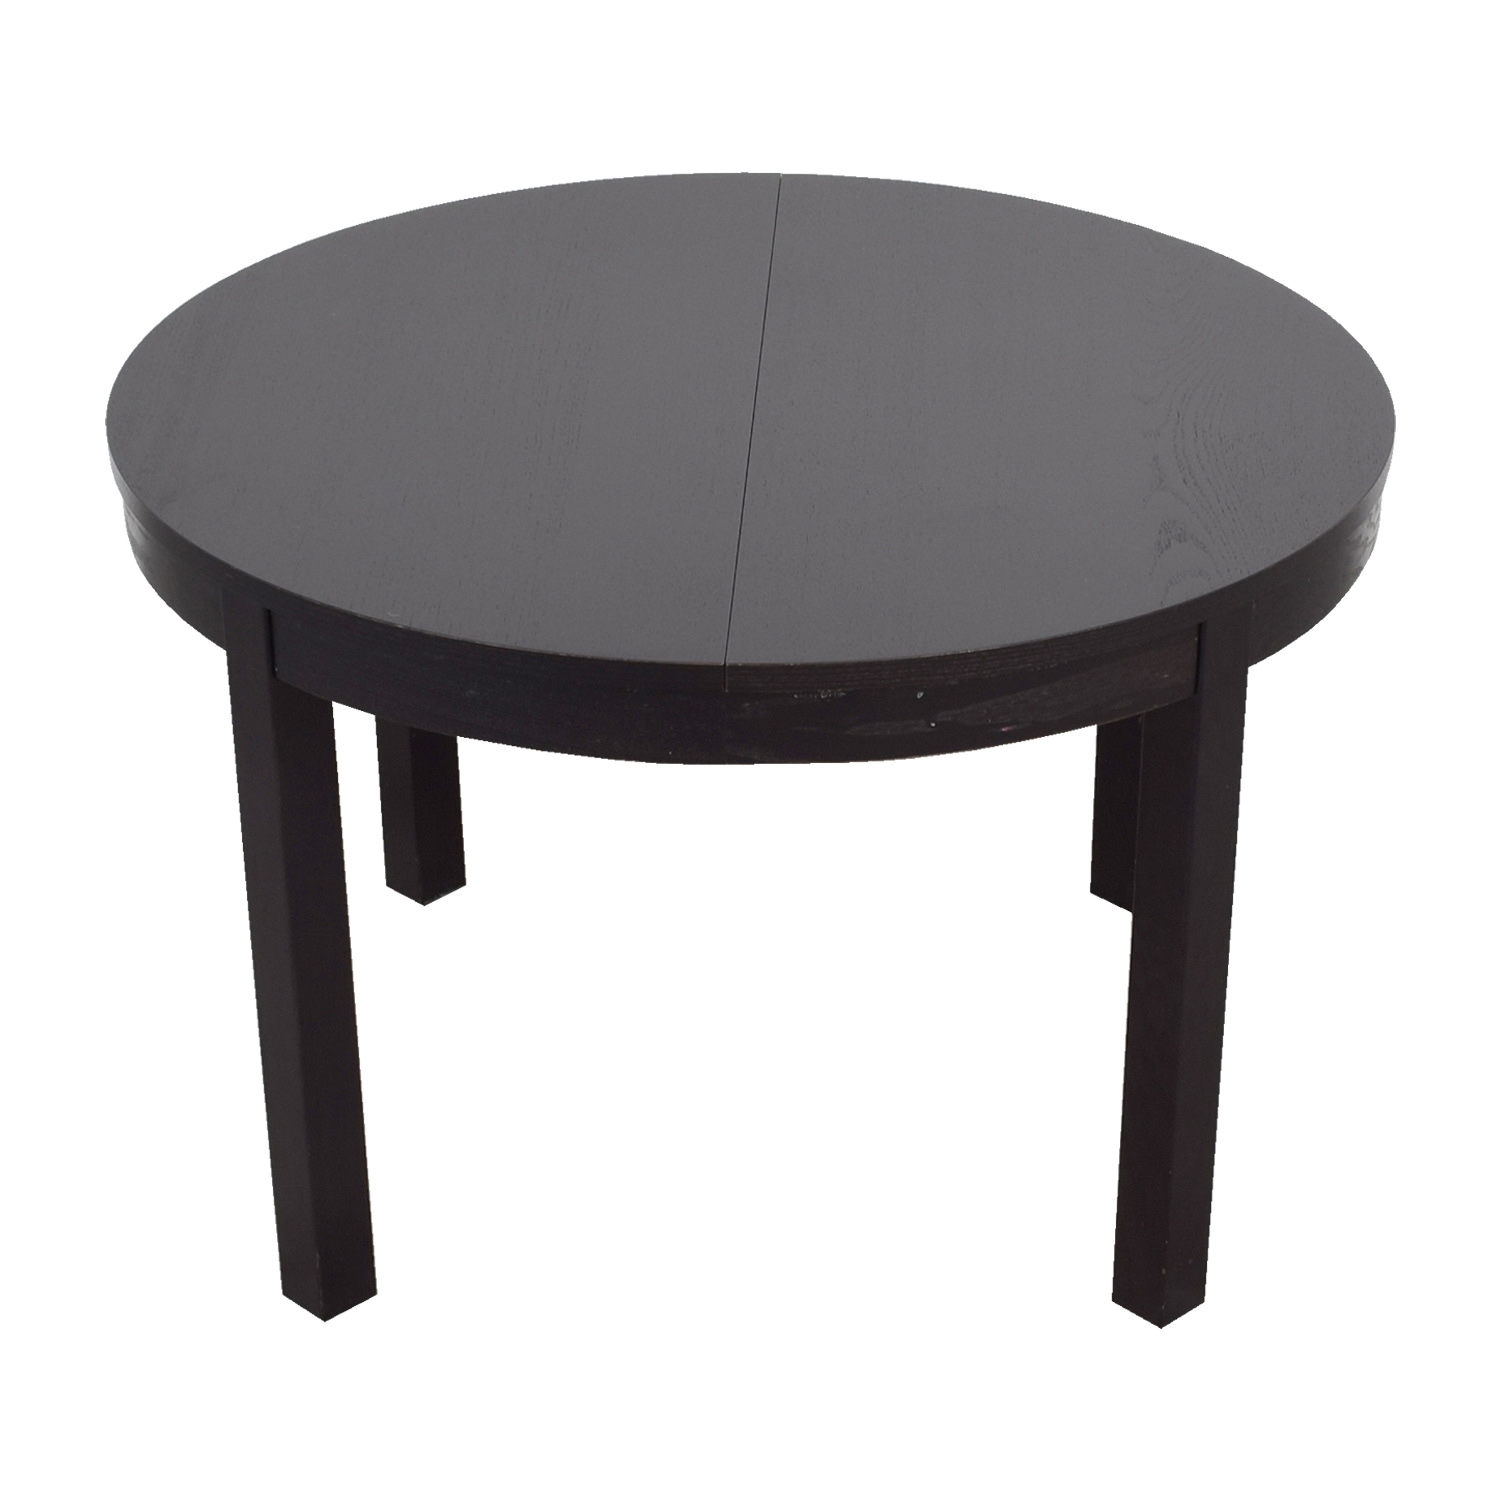 69 off ikea ikea bjursta extendable round to oval dining table tables - Ikea round extendable table ...